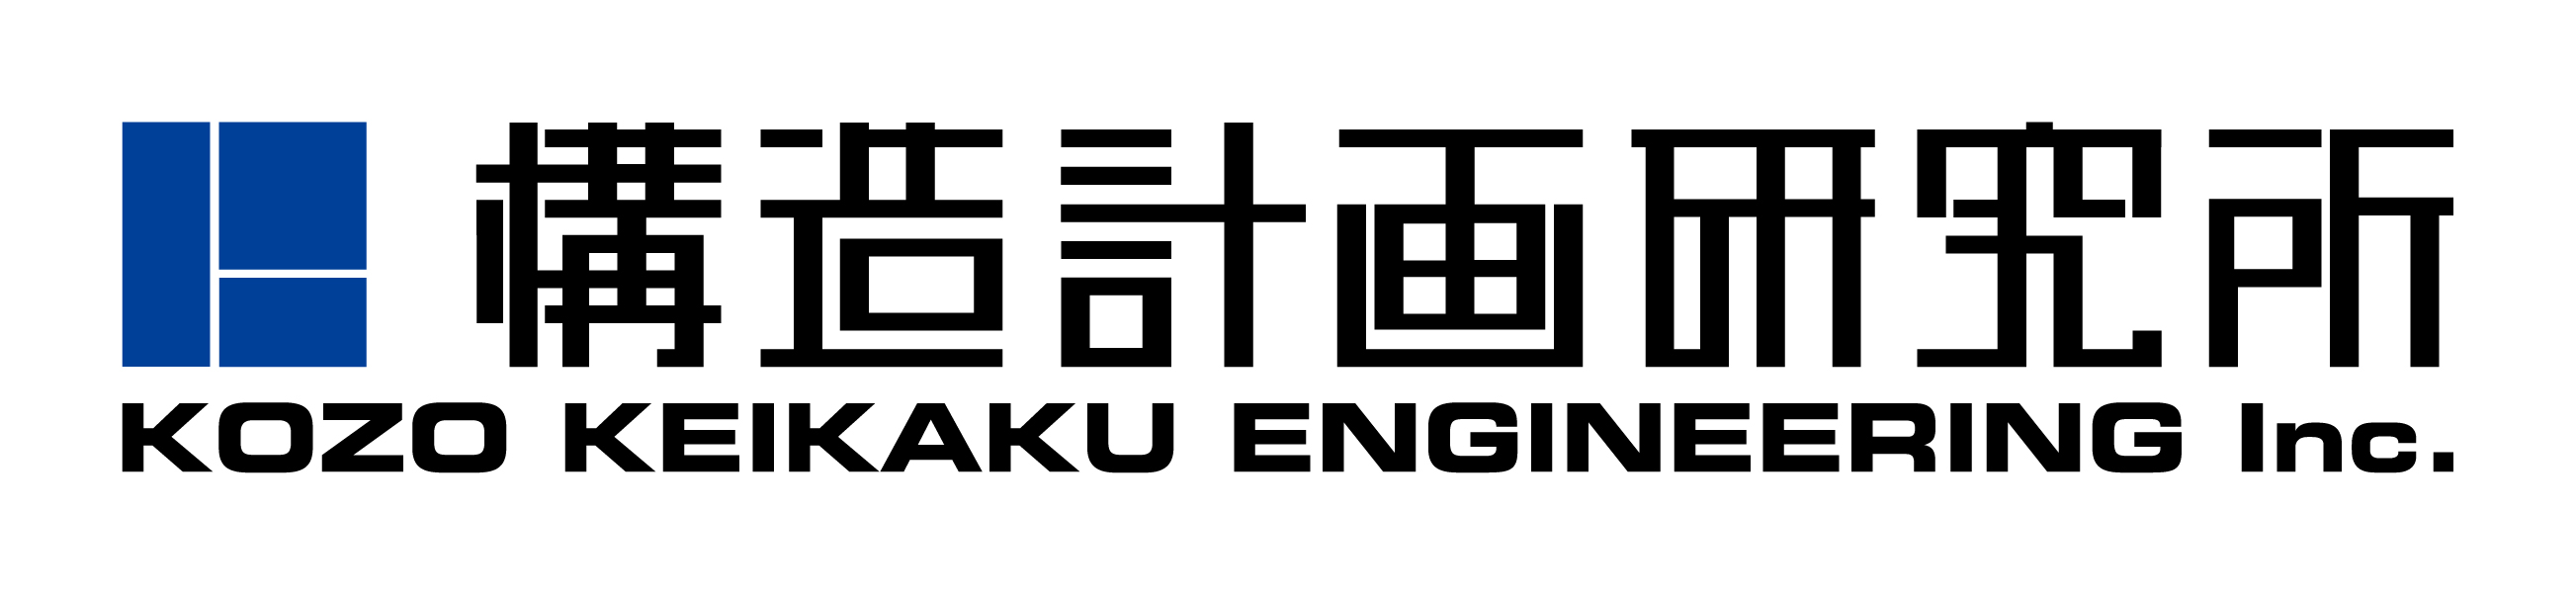 20190906141038 121335 companylogourl kke corporate logo color